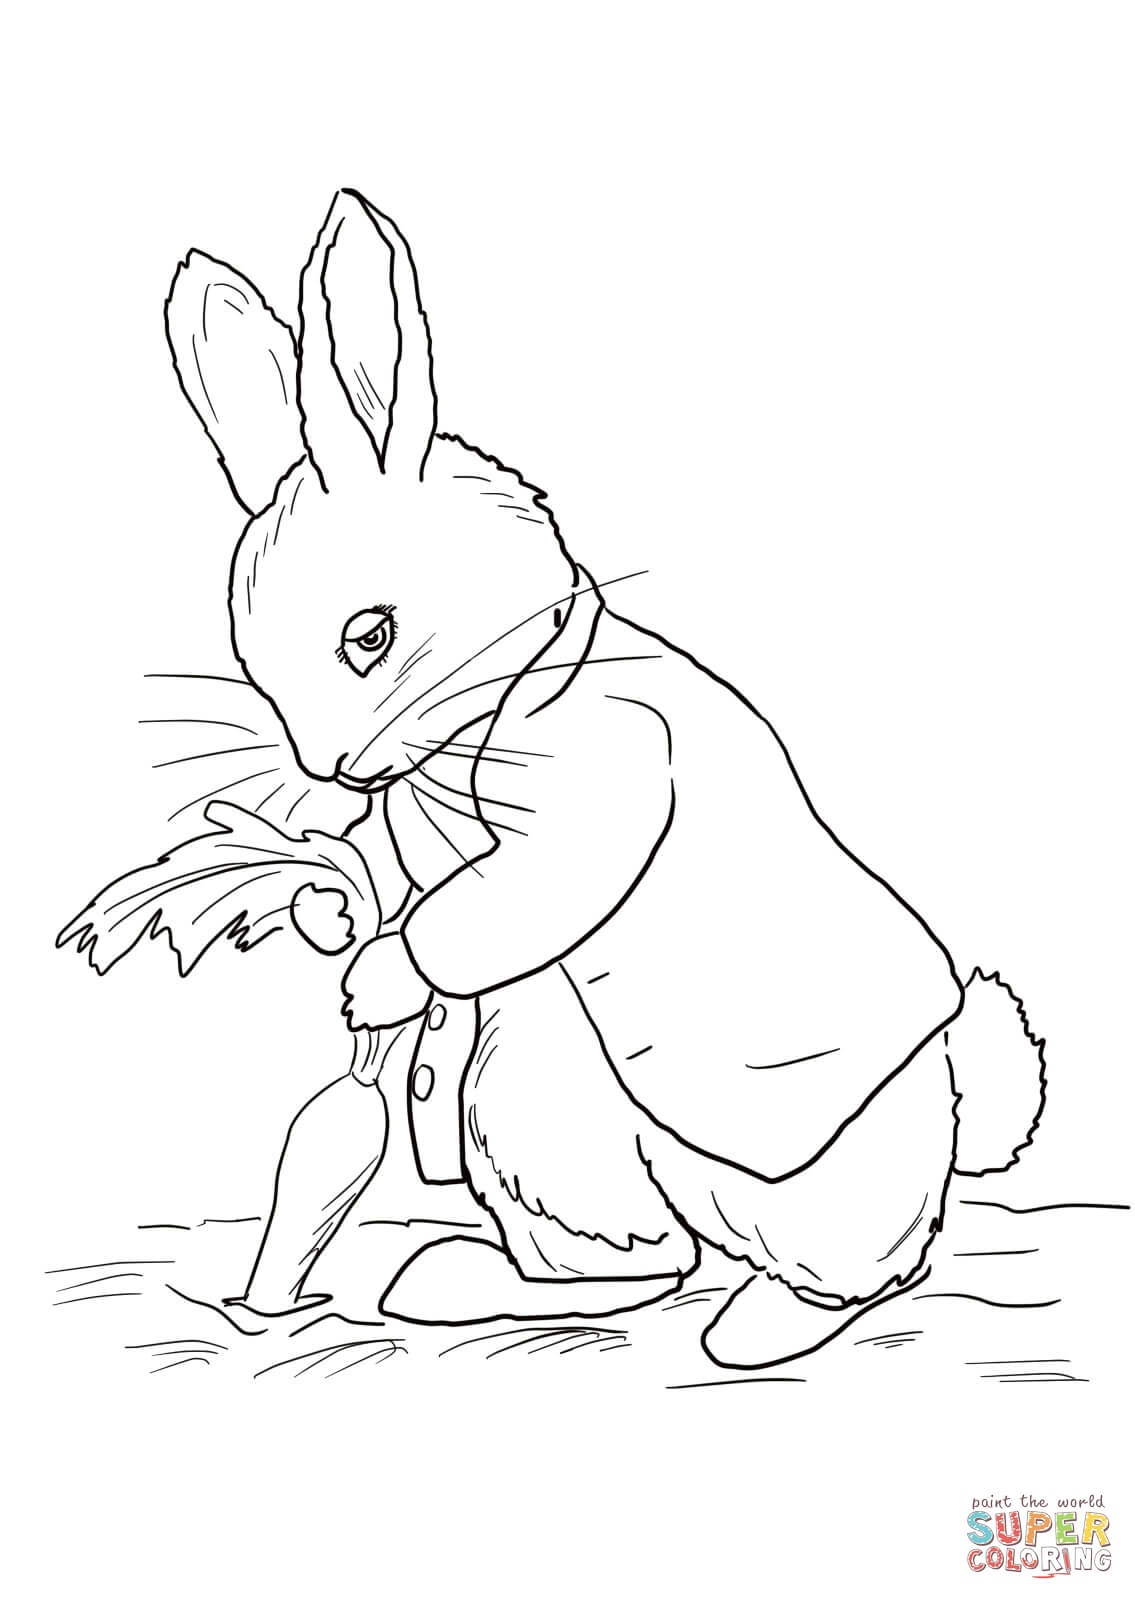 Peter Rabbit Stealing Carrots Coloring Page | Free Printable - Free Printable Peter Rabbit Coloring Pages